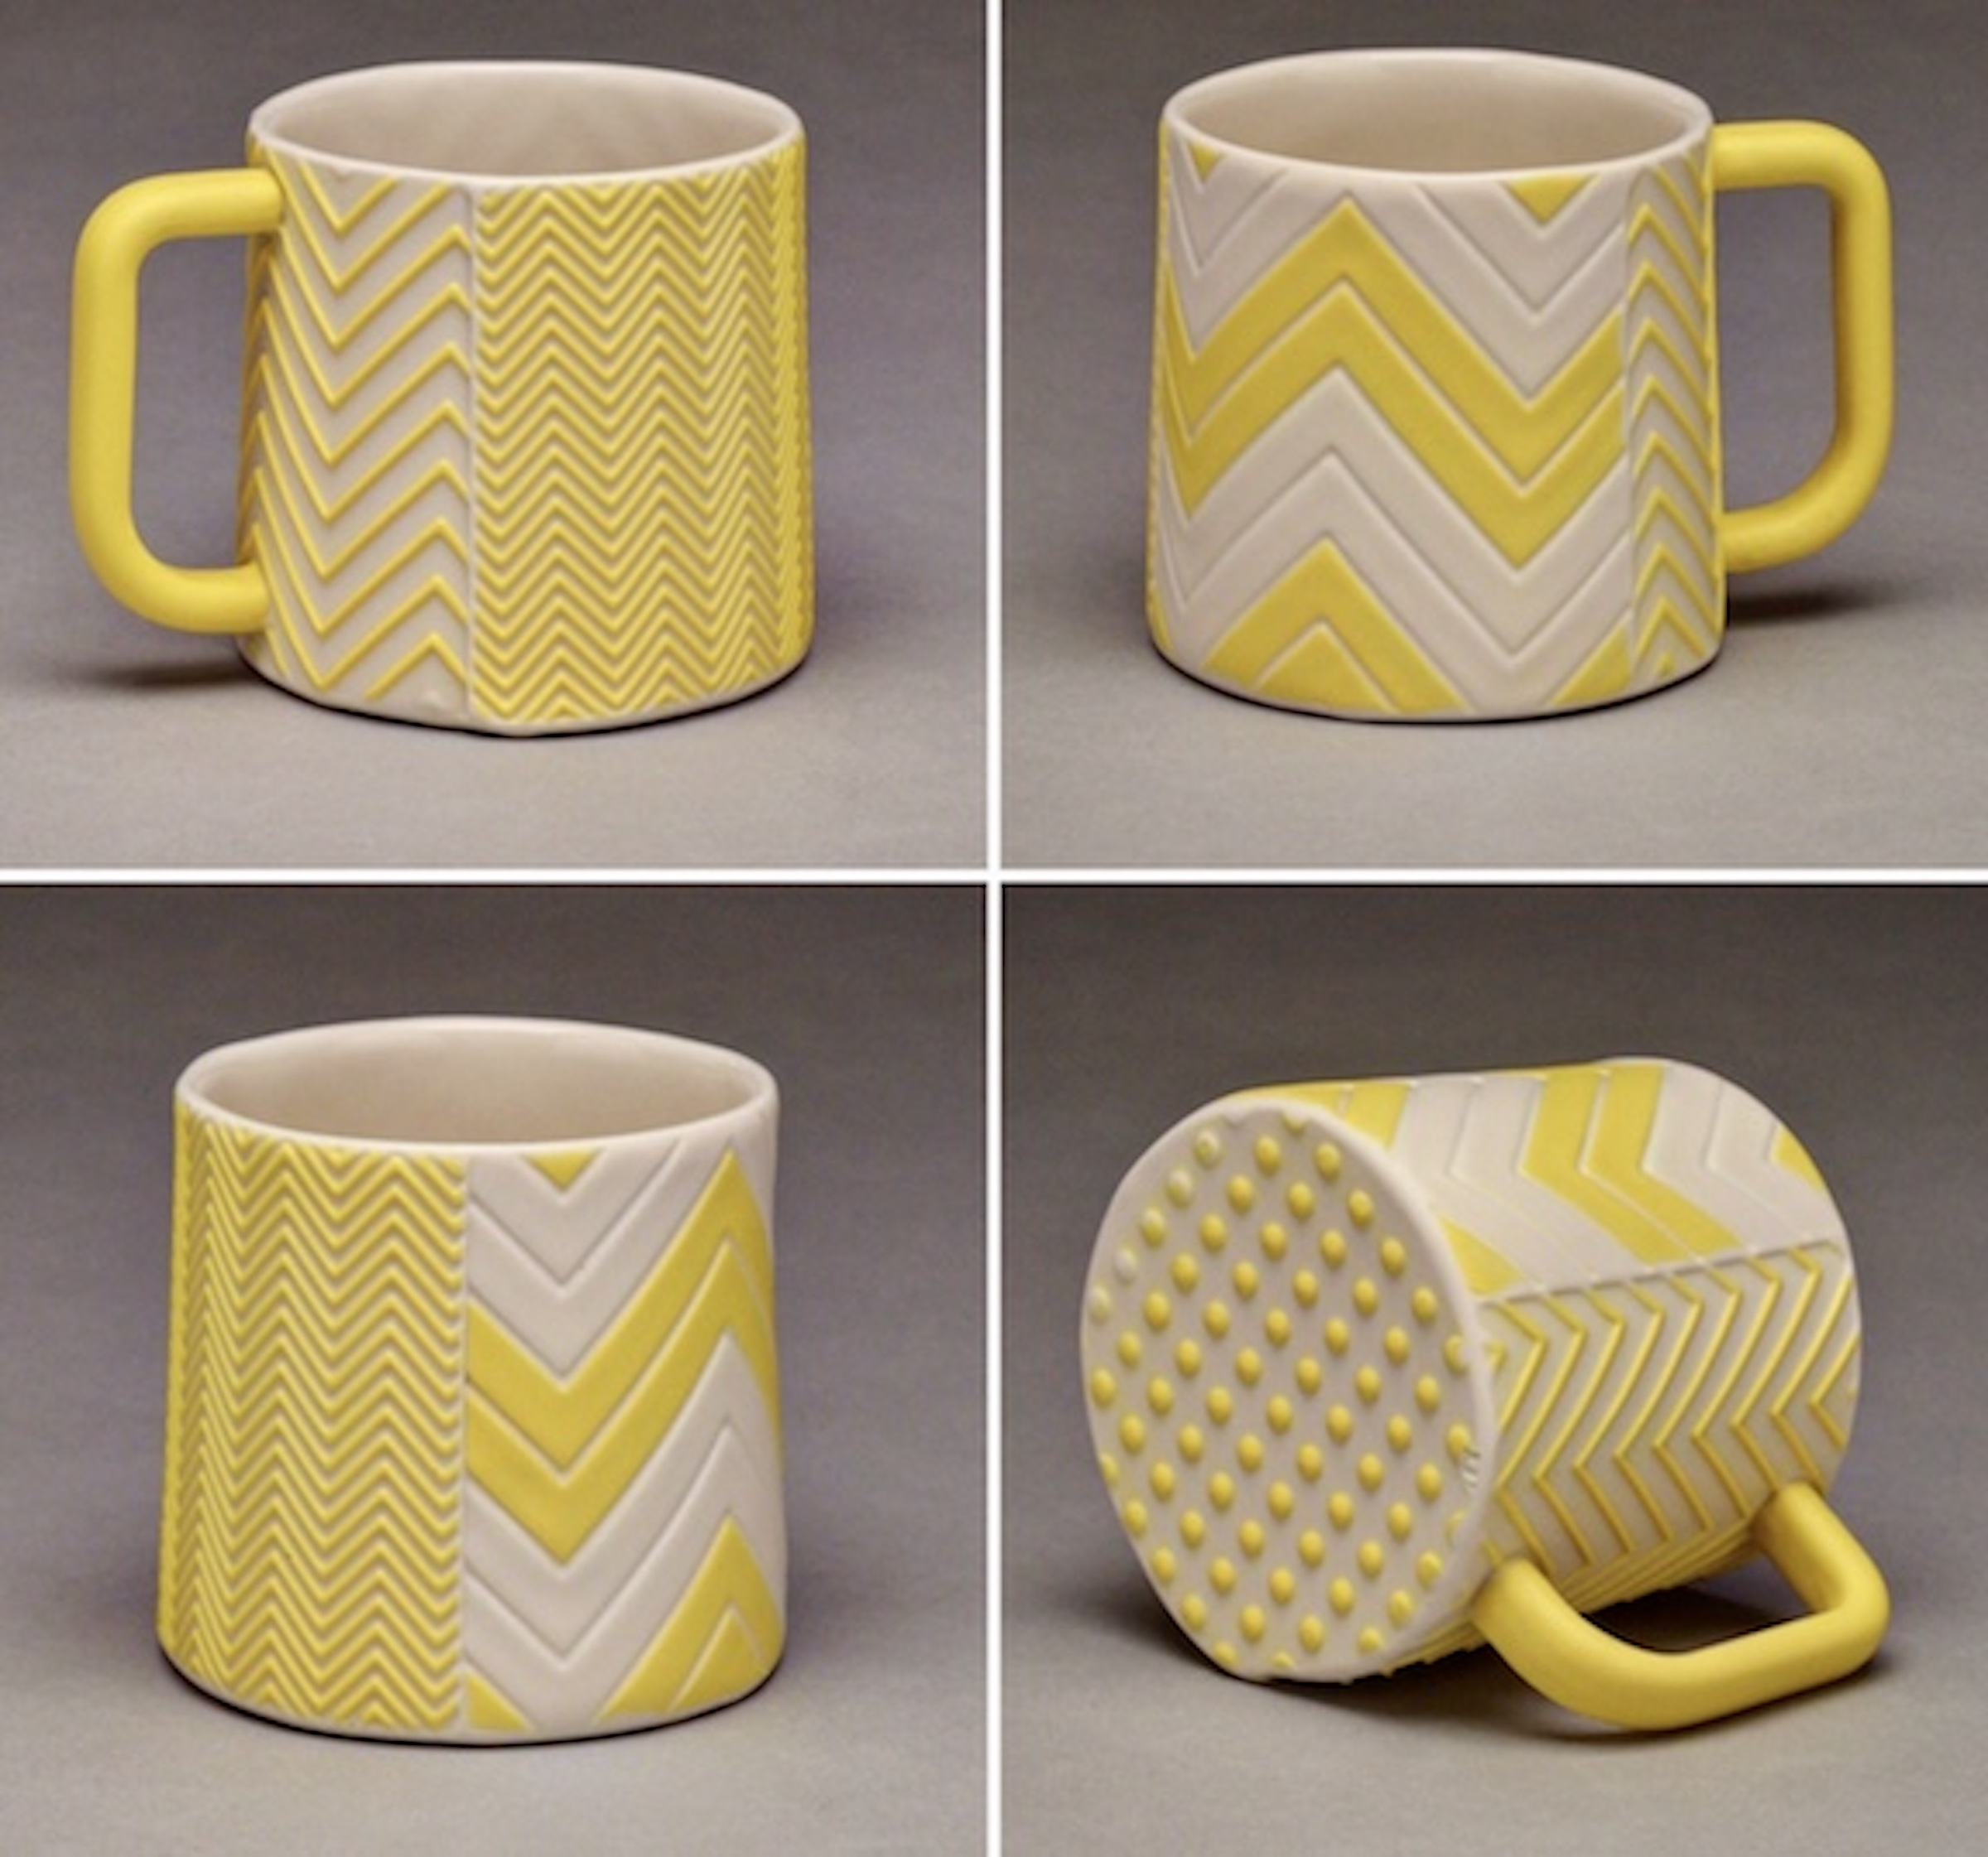 Yellow Chevron Mug.jpg